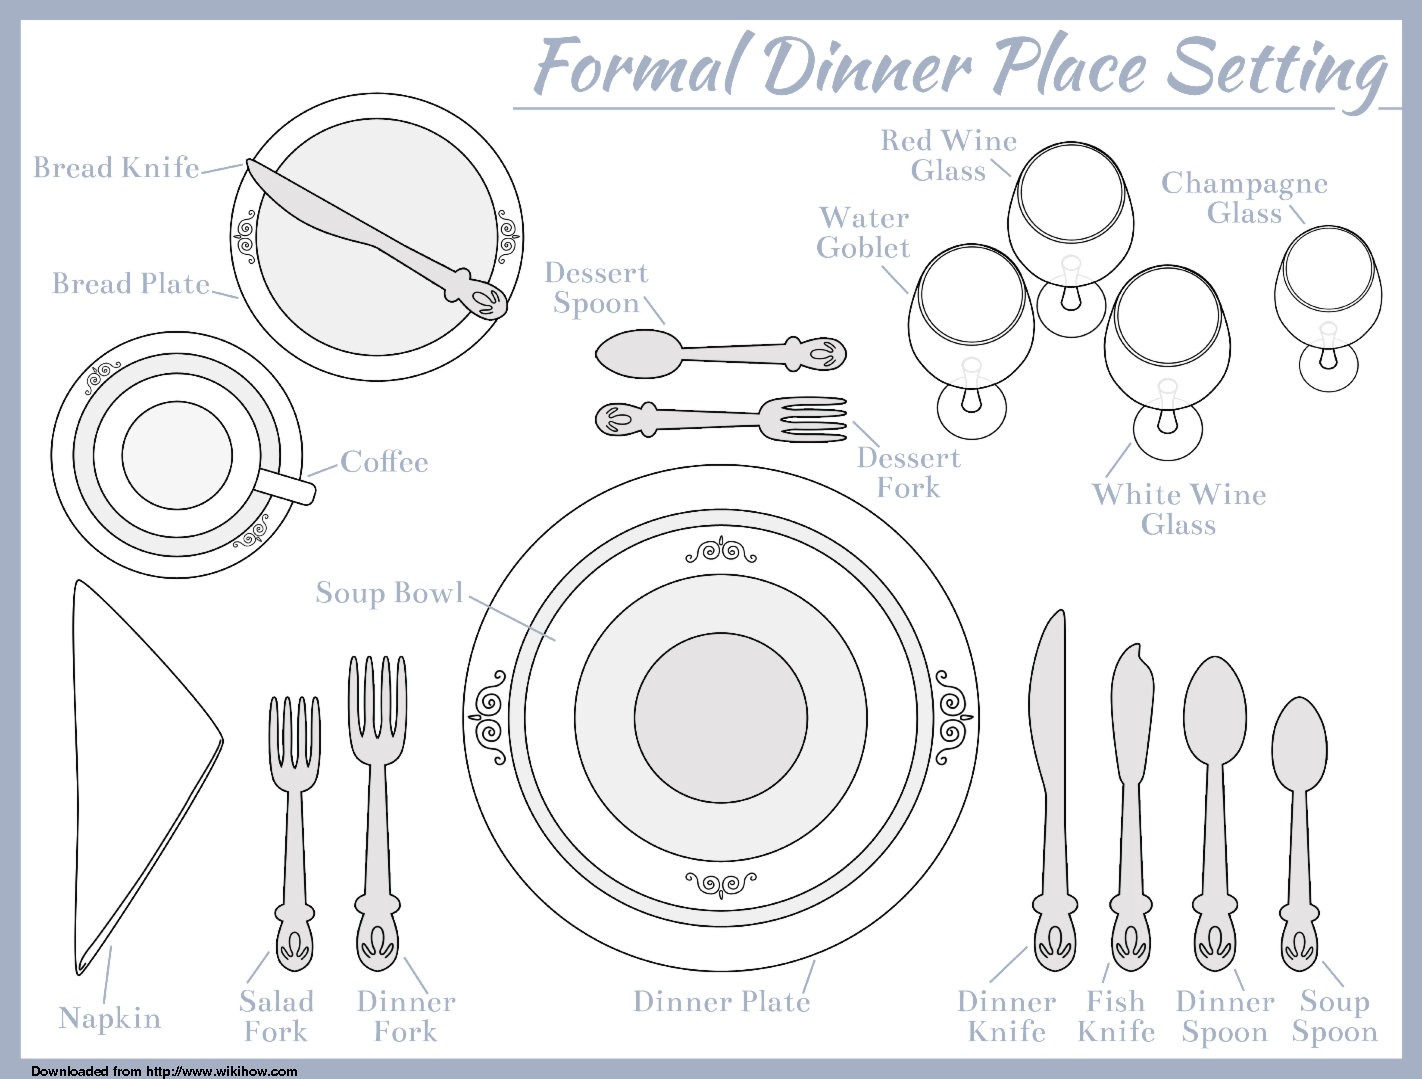 Place Setting Template For Seven Course Meal